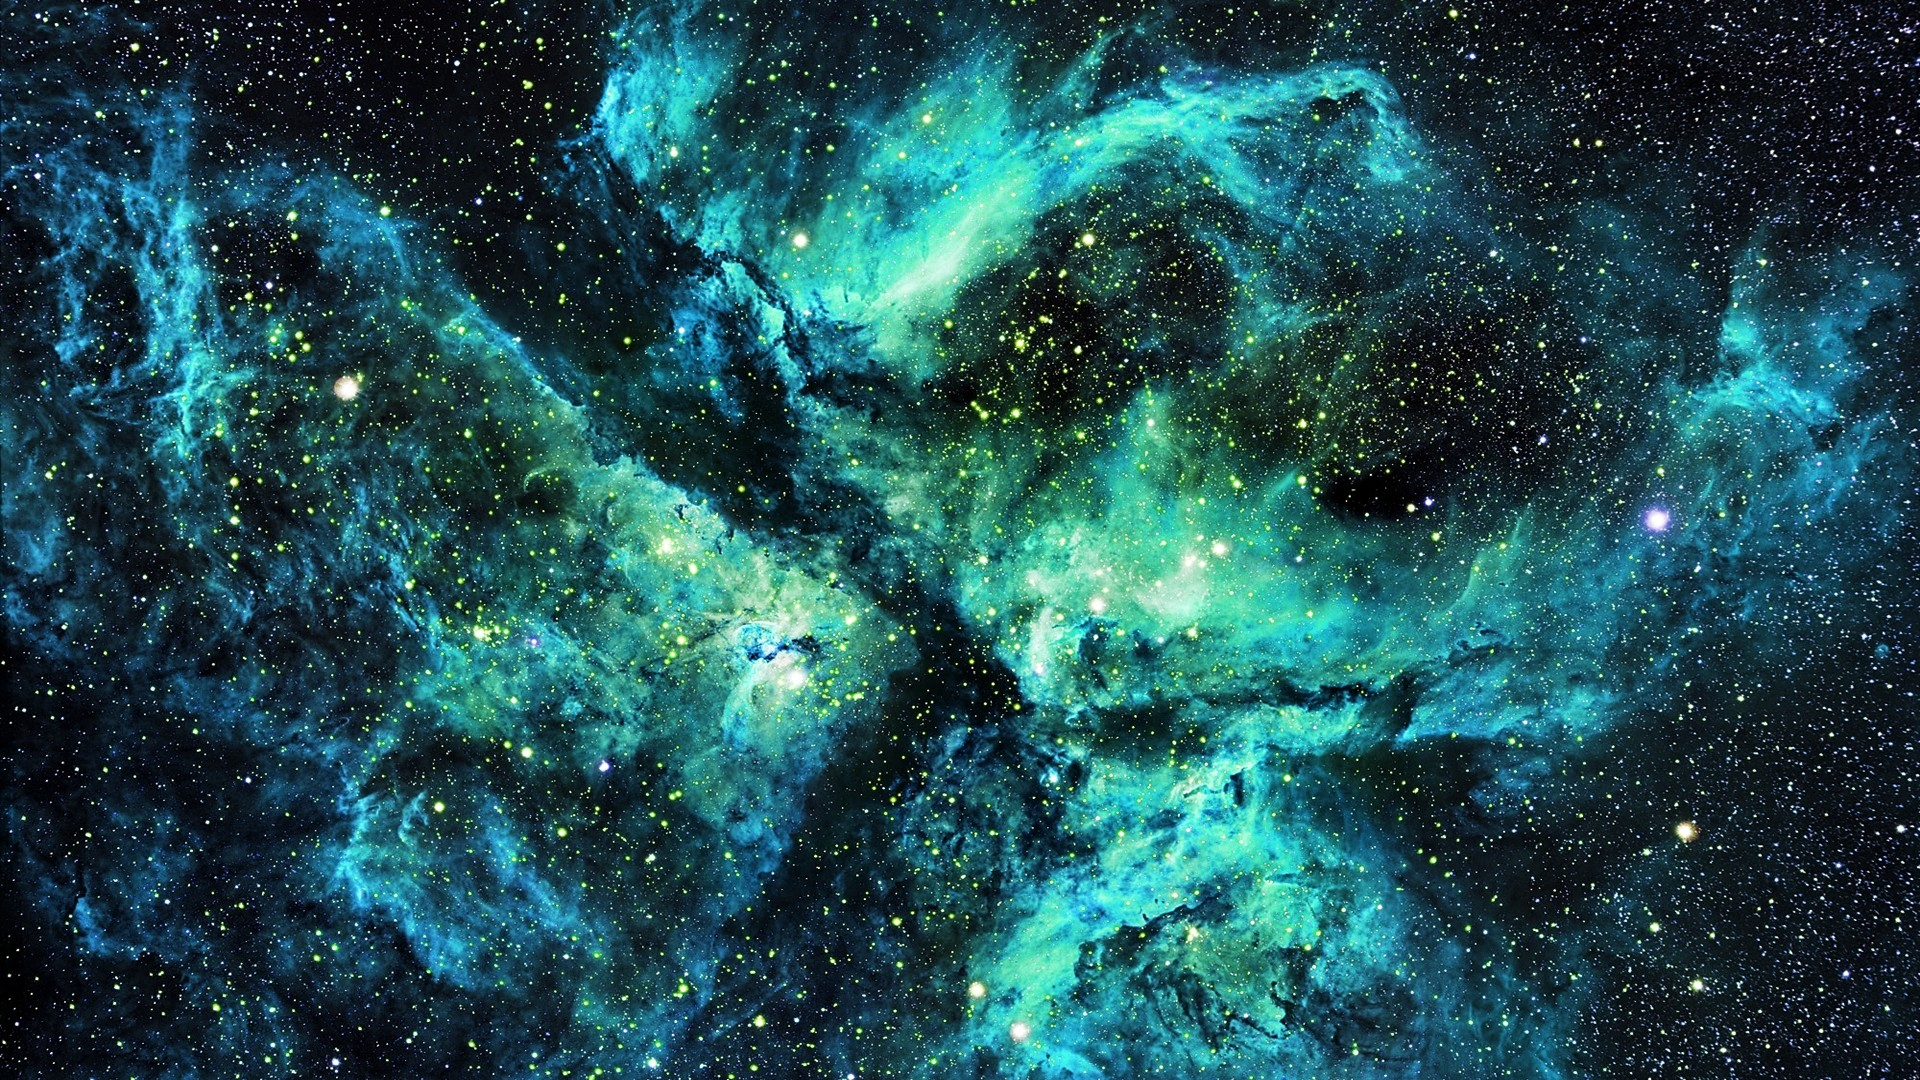 Hd Nebula Wallpaper 63 Pictures